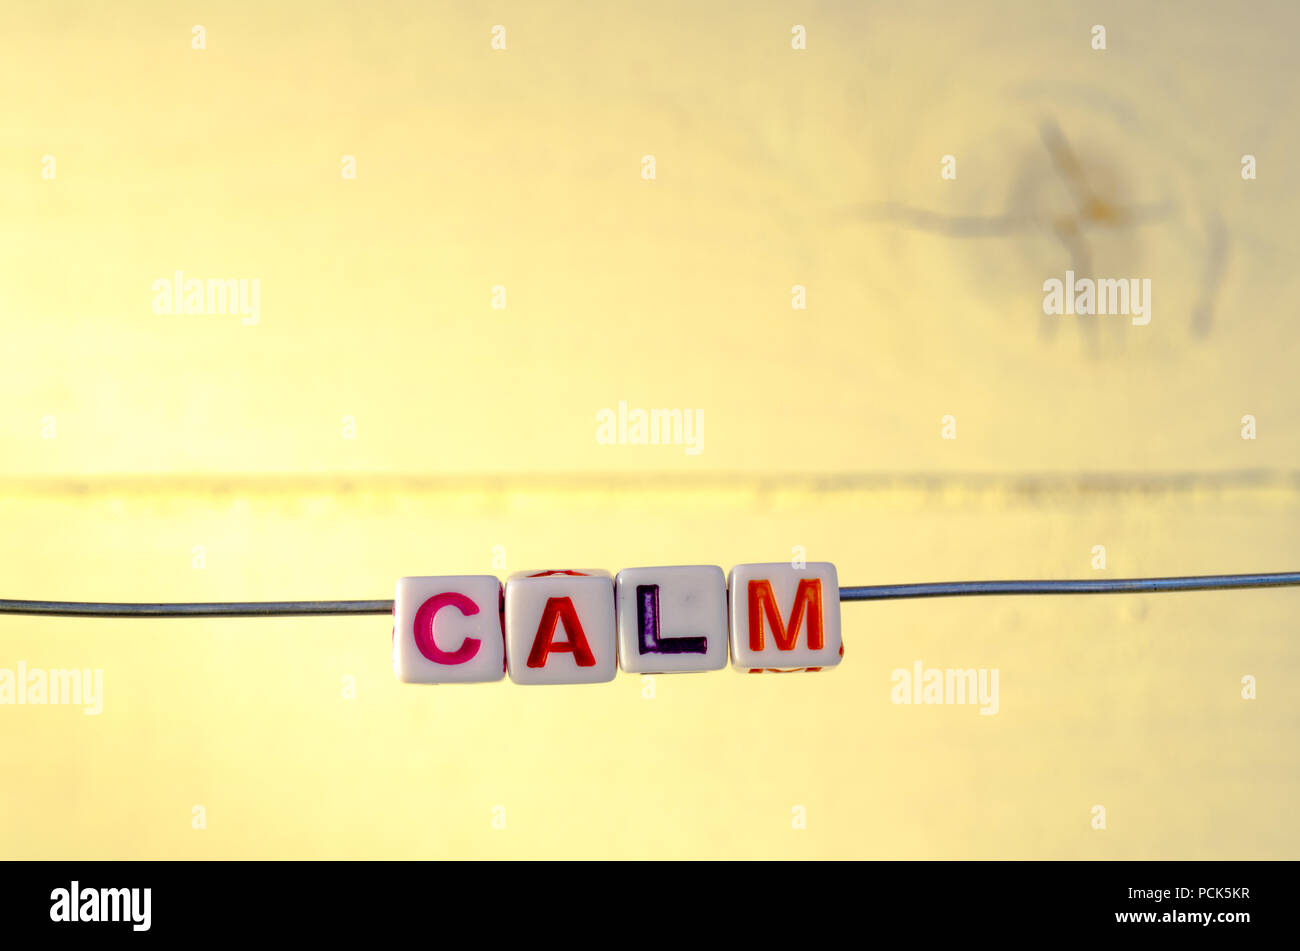 A Studio Photograph of Alphabetical Beads Suspended on a Wire Spelling 'Calm' - Stock Image